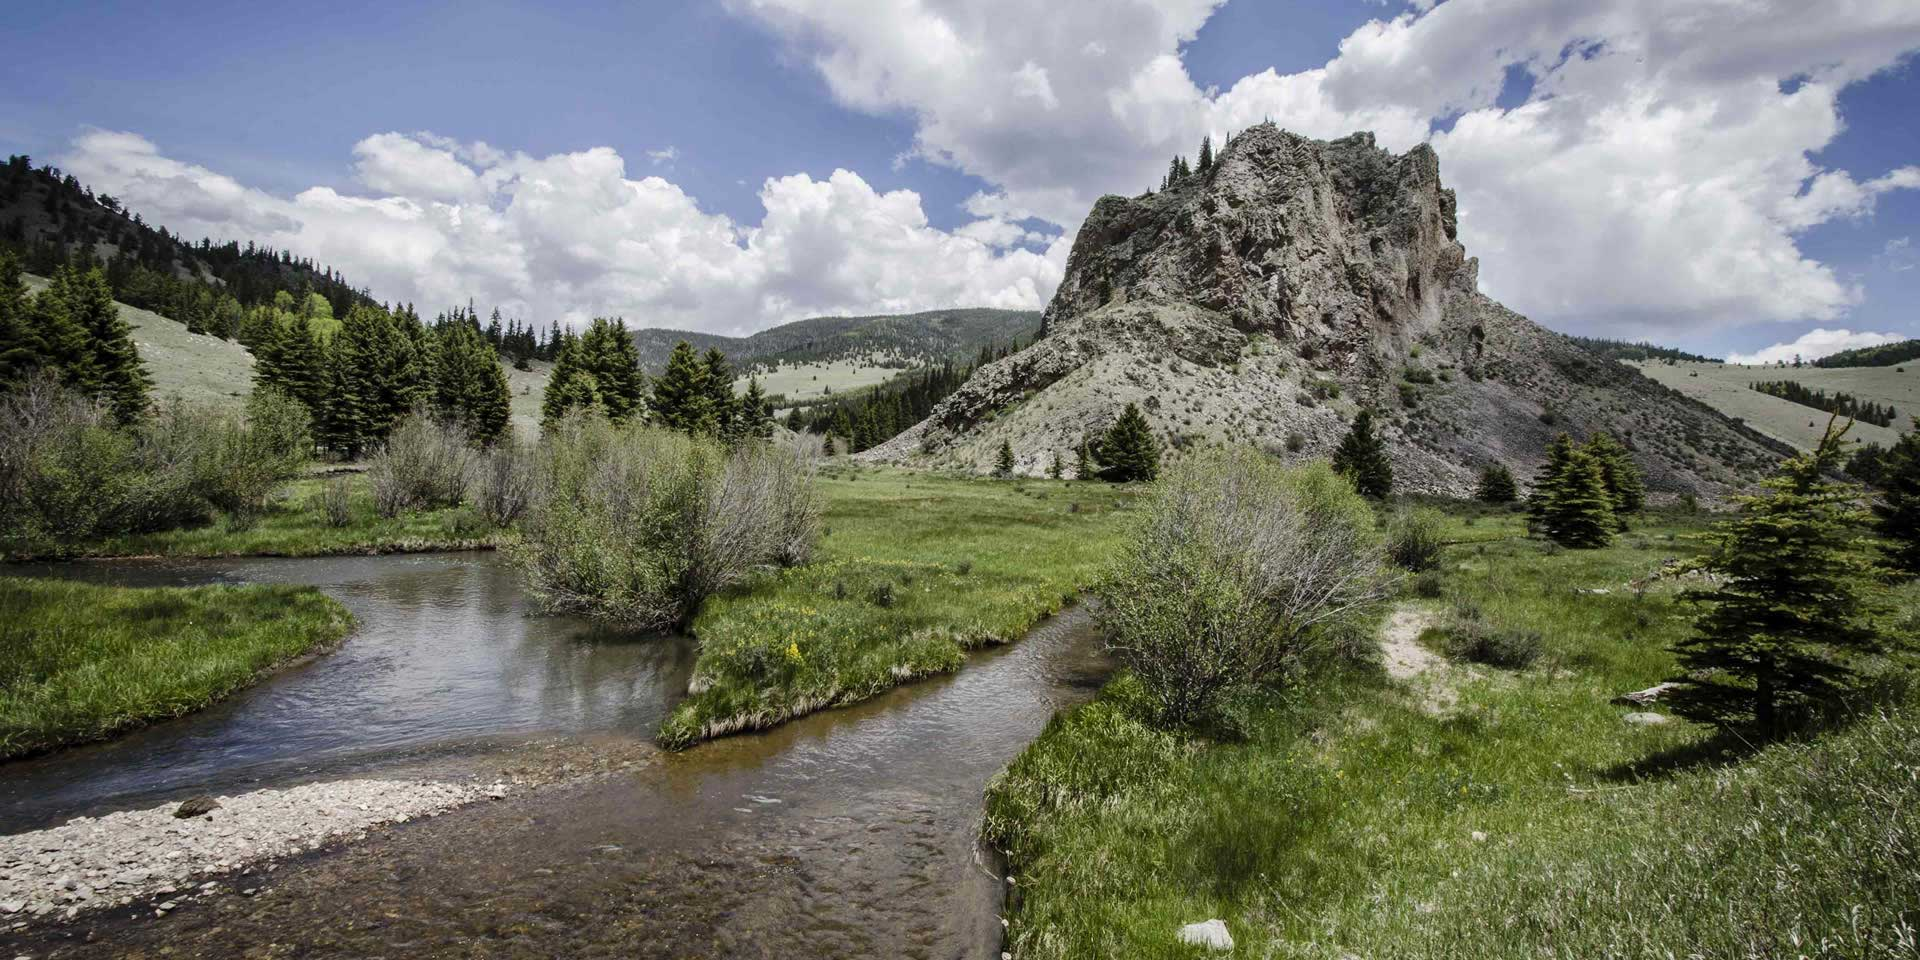 Valle Vidal stream and butte